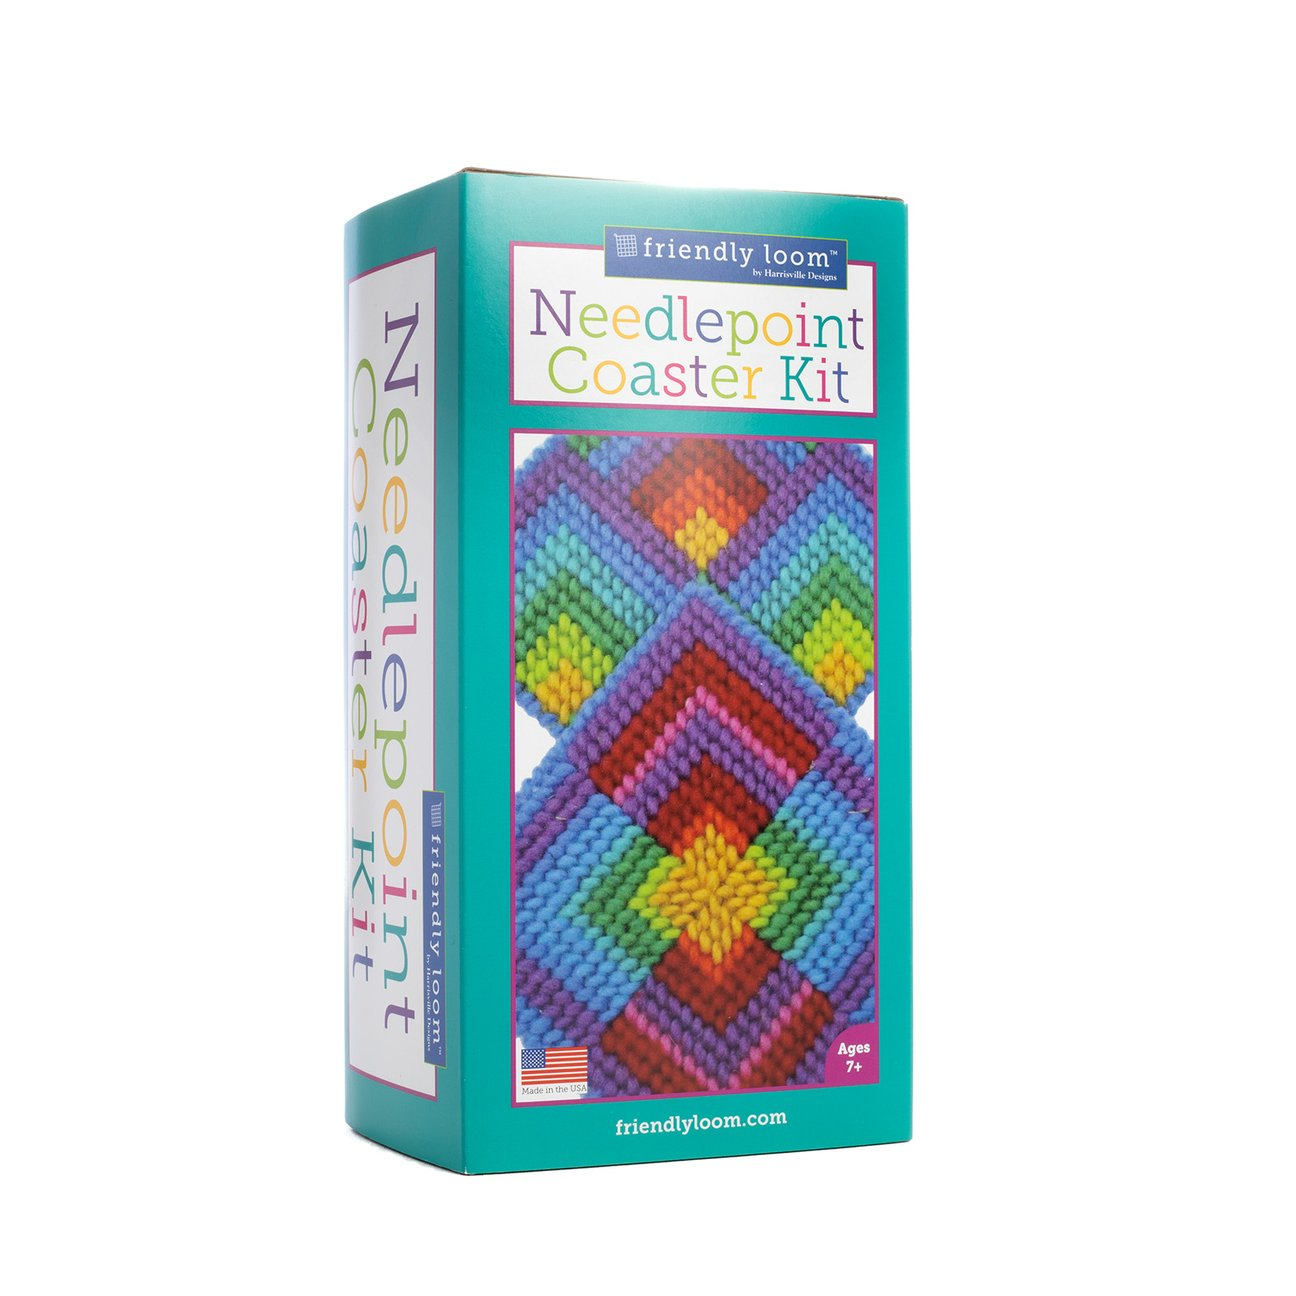 Needlepoint Coaster Kit